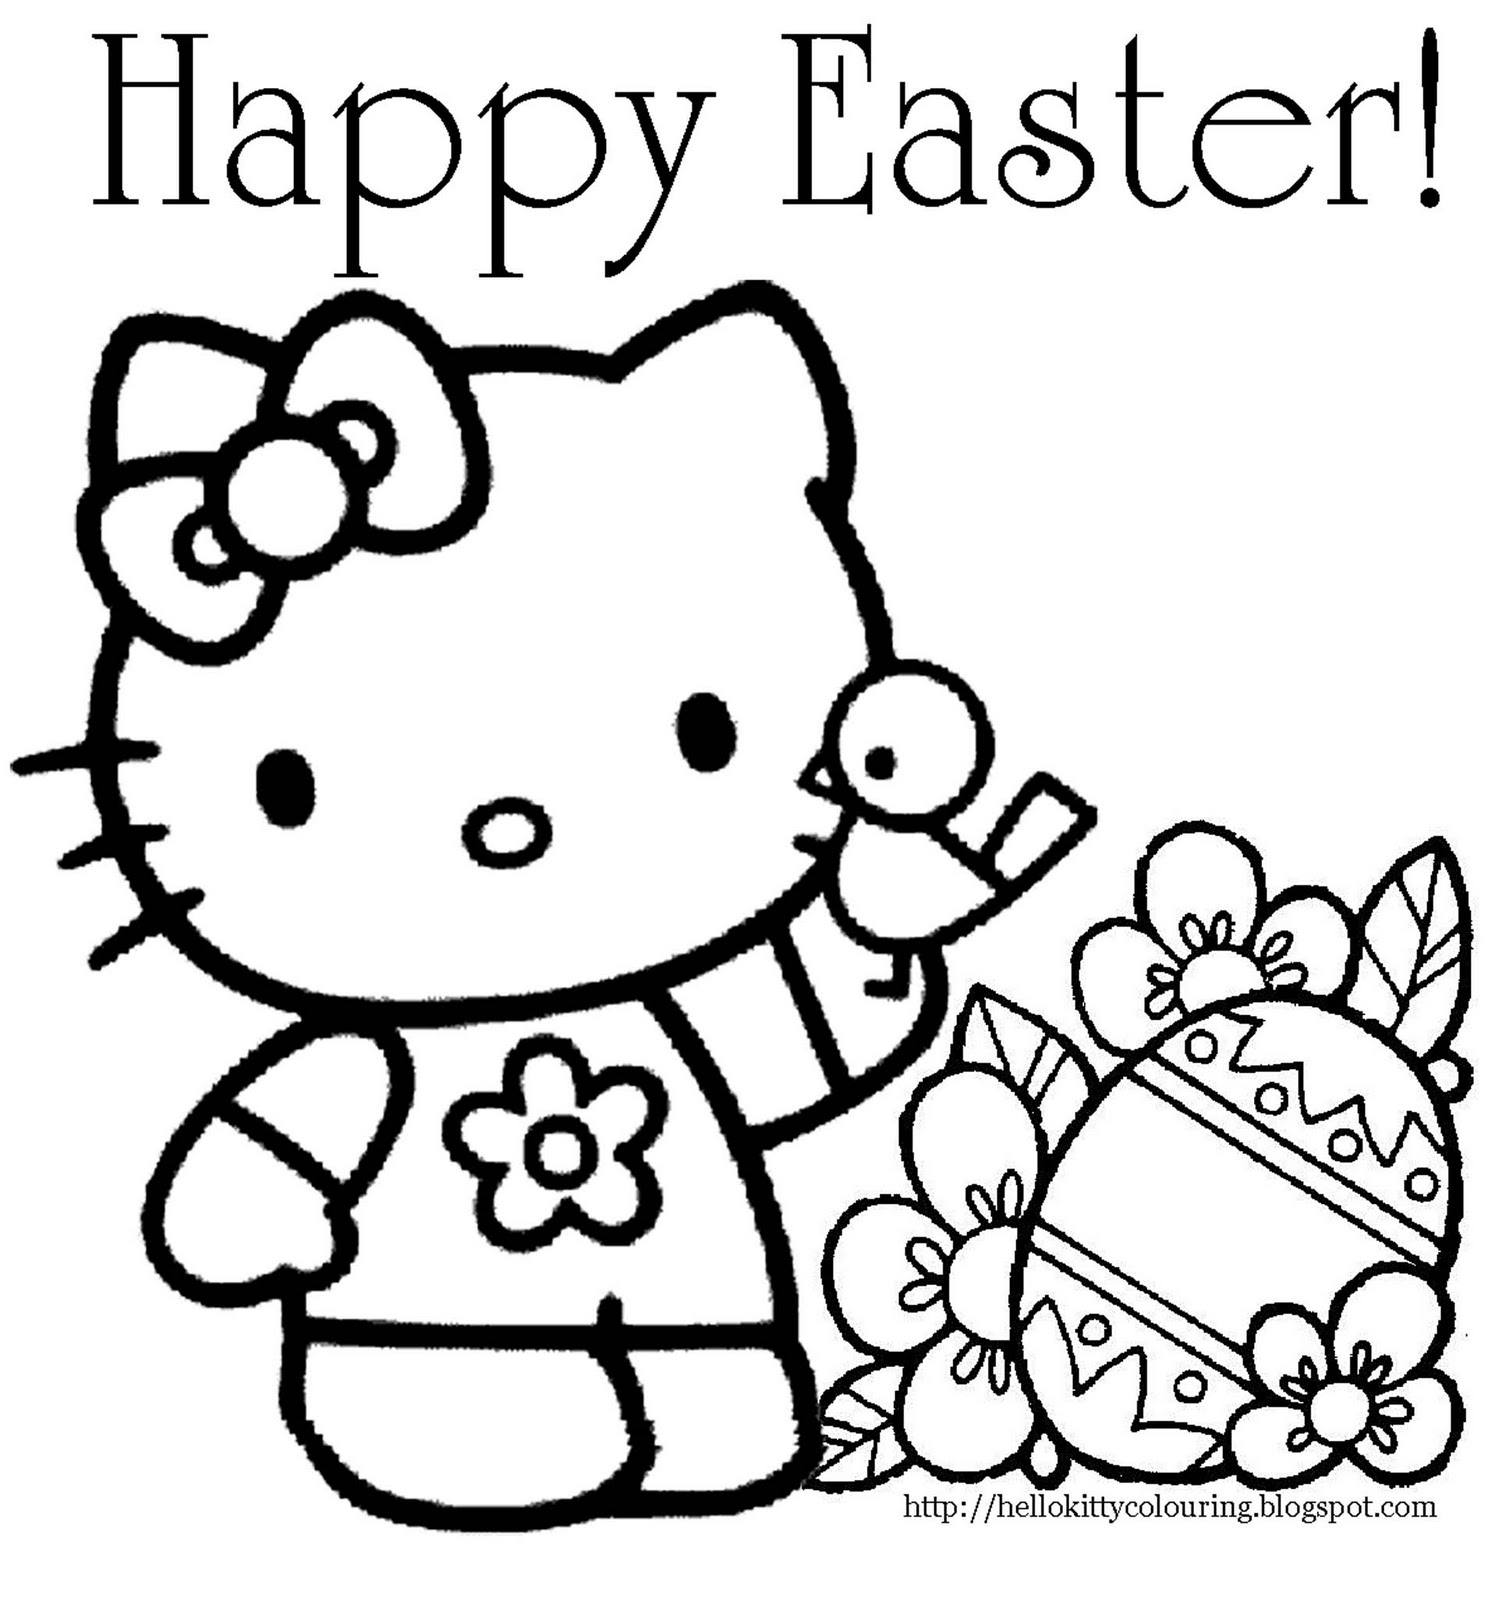 Coloring Pages on Pinterest Hello Kitty, Printable Coloring